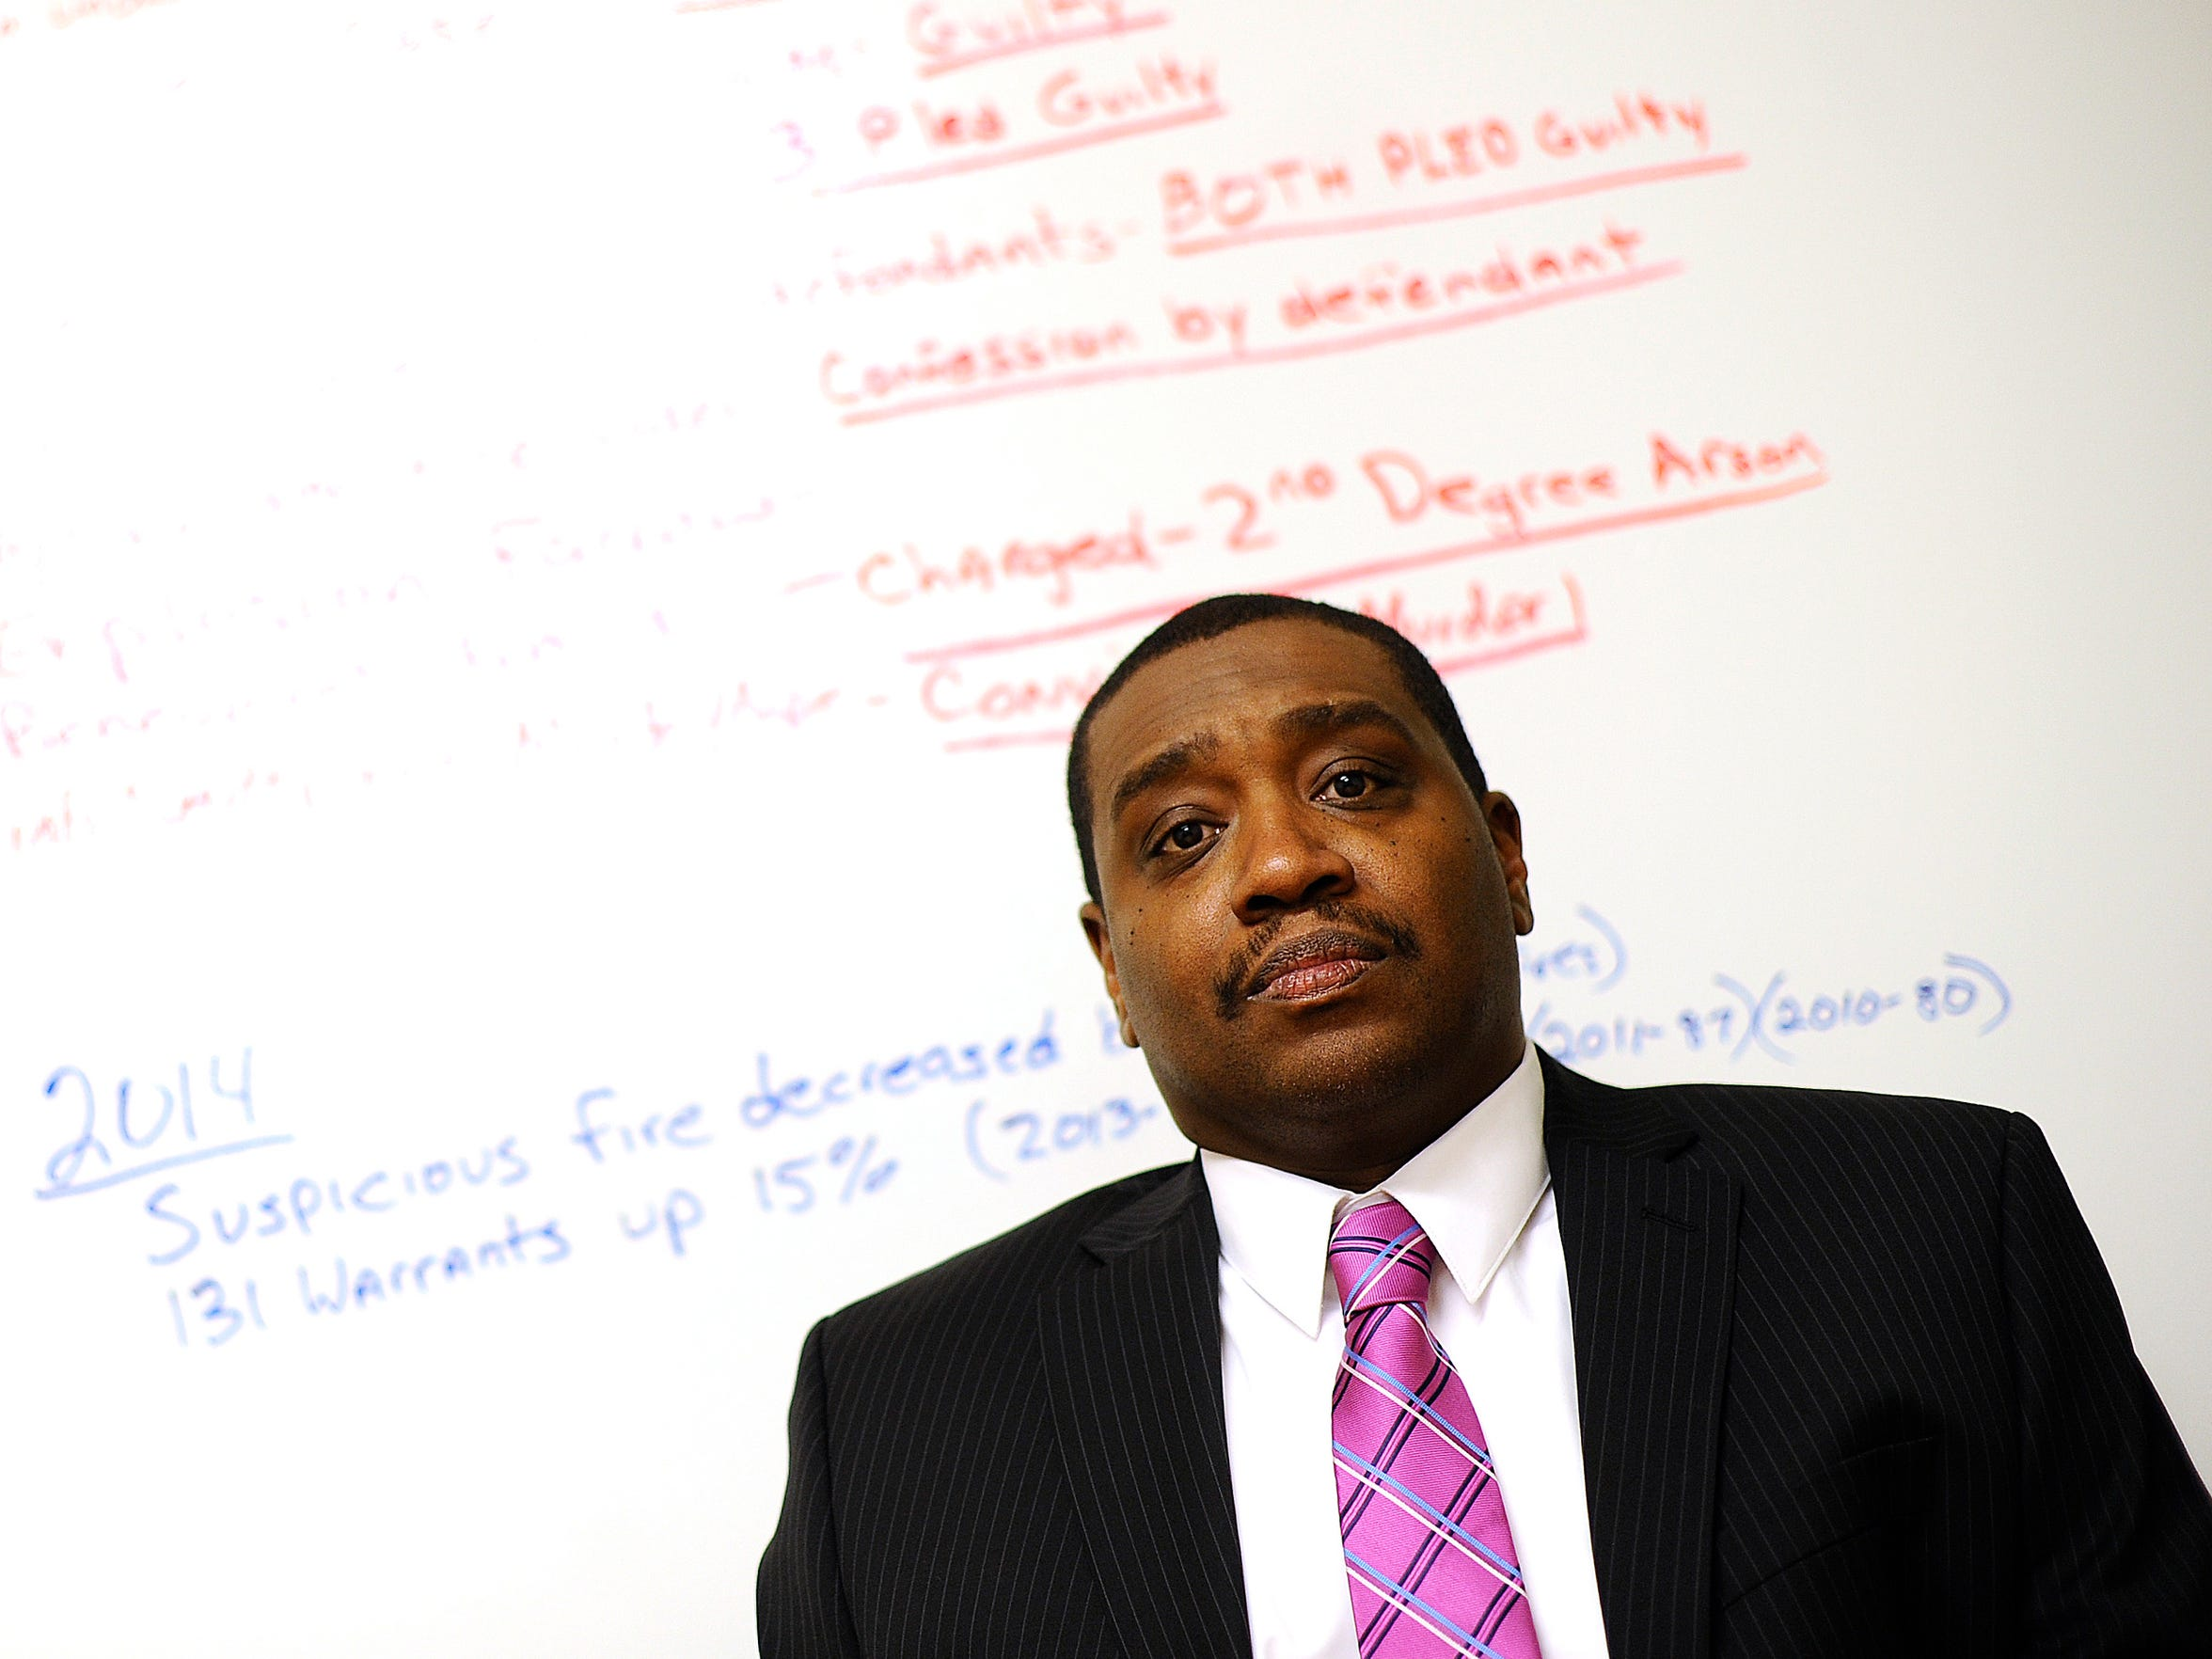 Detroit Arson Chief Charles Simms keeps track of the